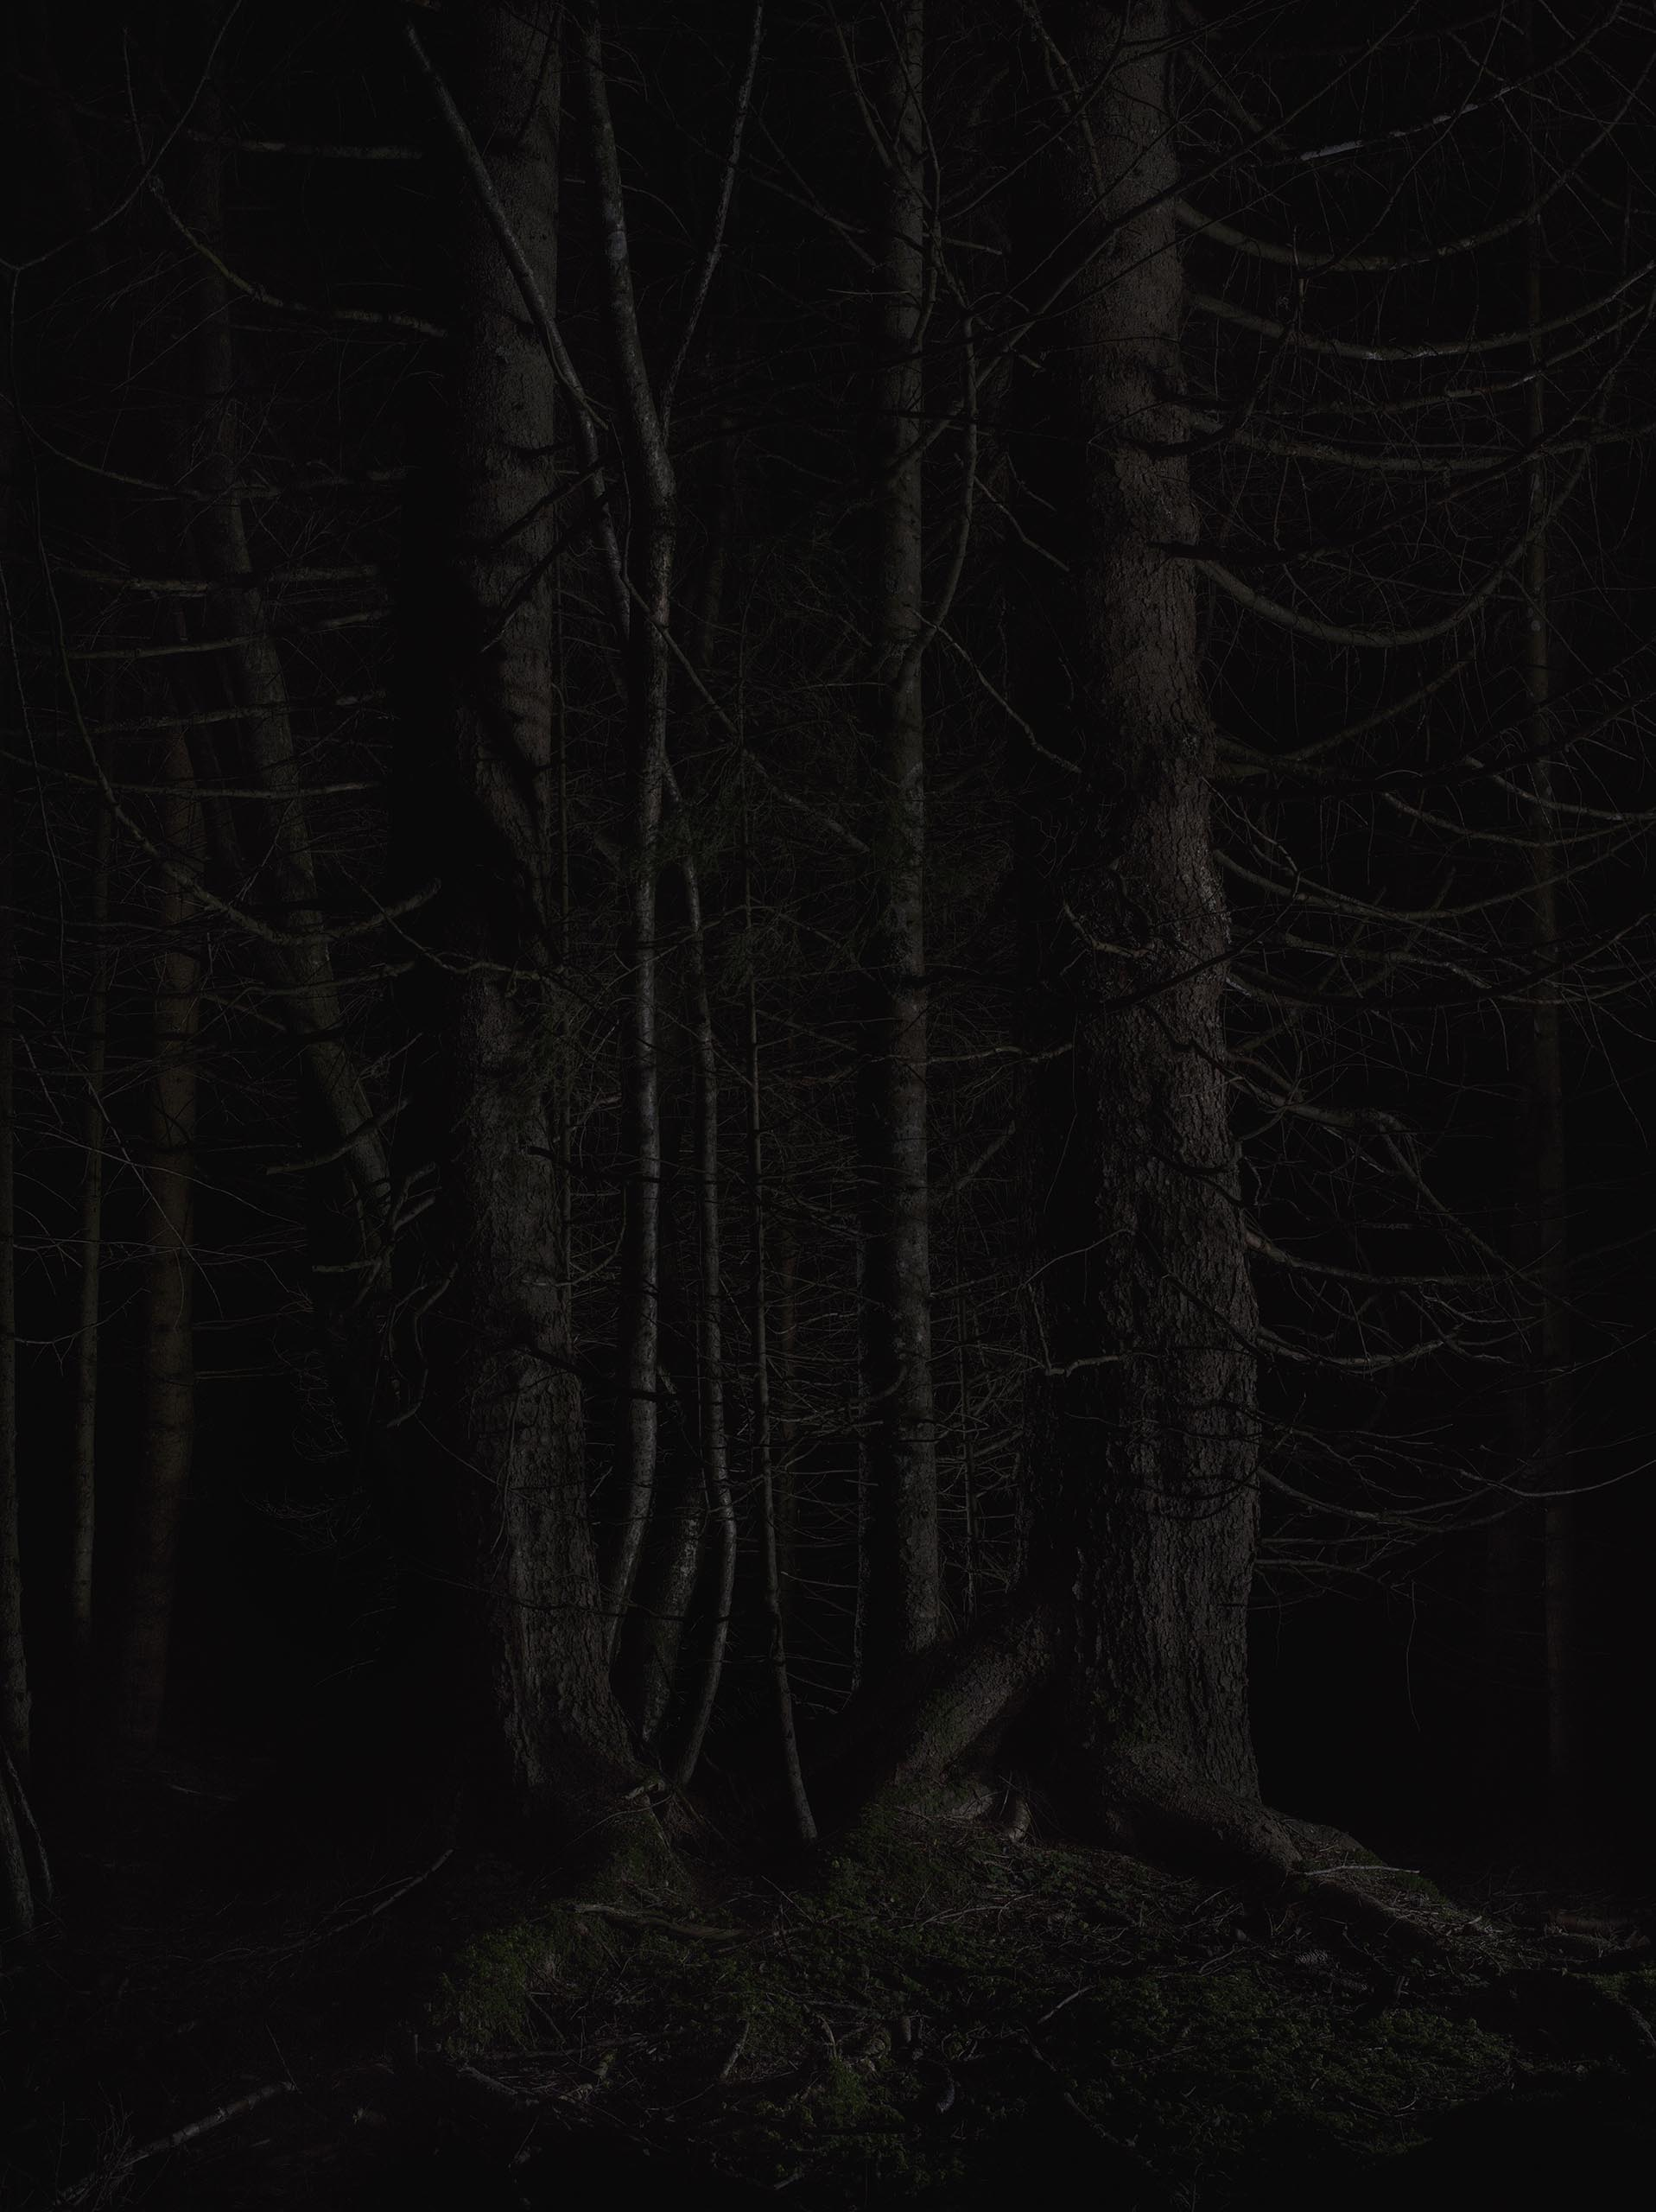 02_FOREST_08